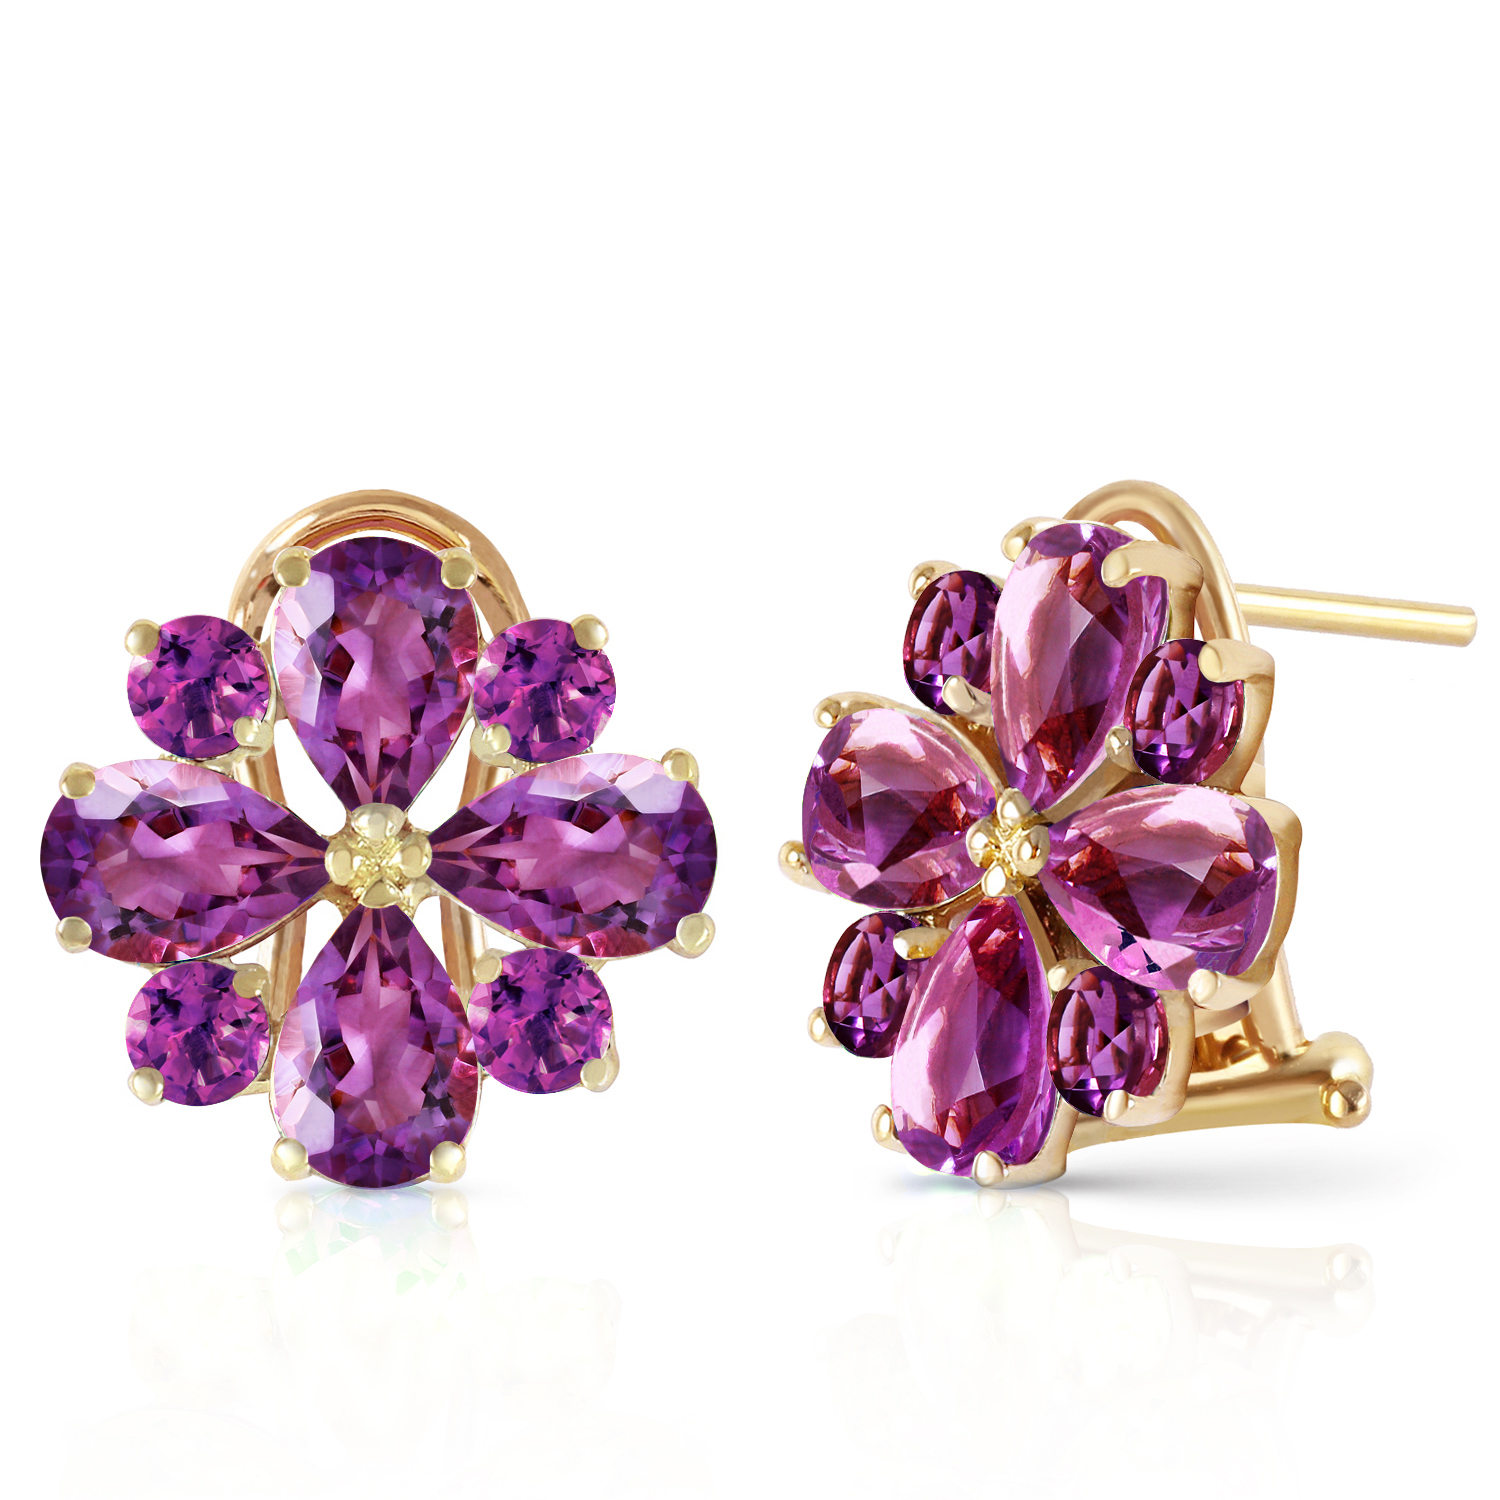 ctw 14k solid gold fiore amethyst earrings ebay. Black Bedroom Furniture Sets. Home Design Ideas